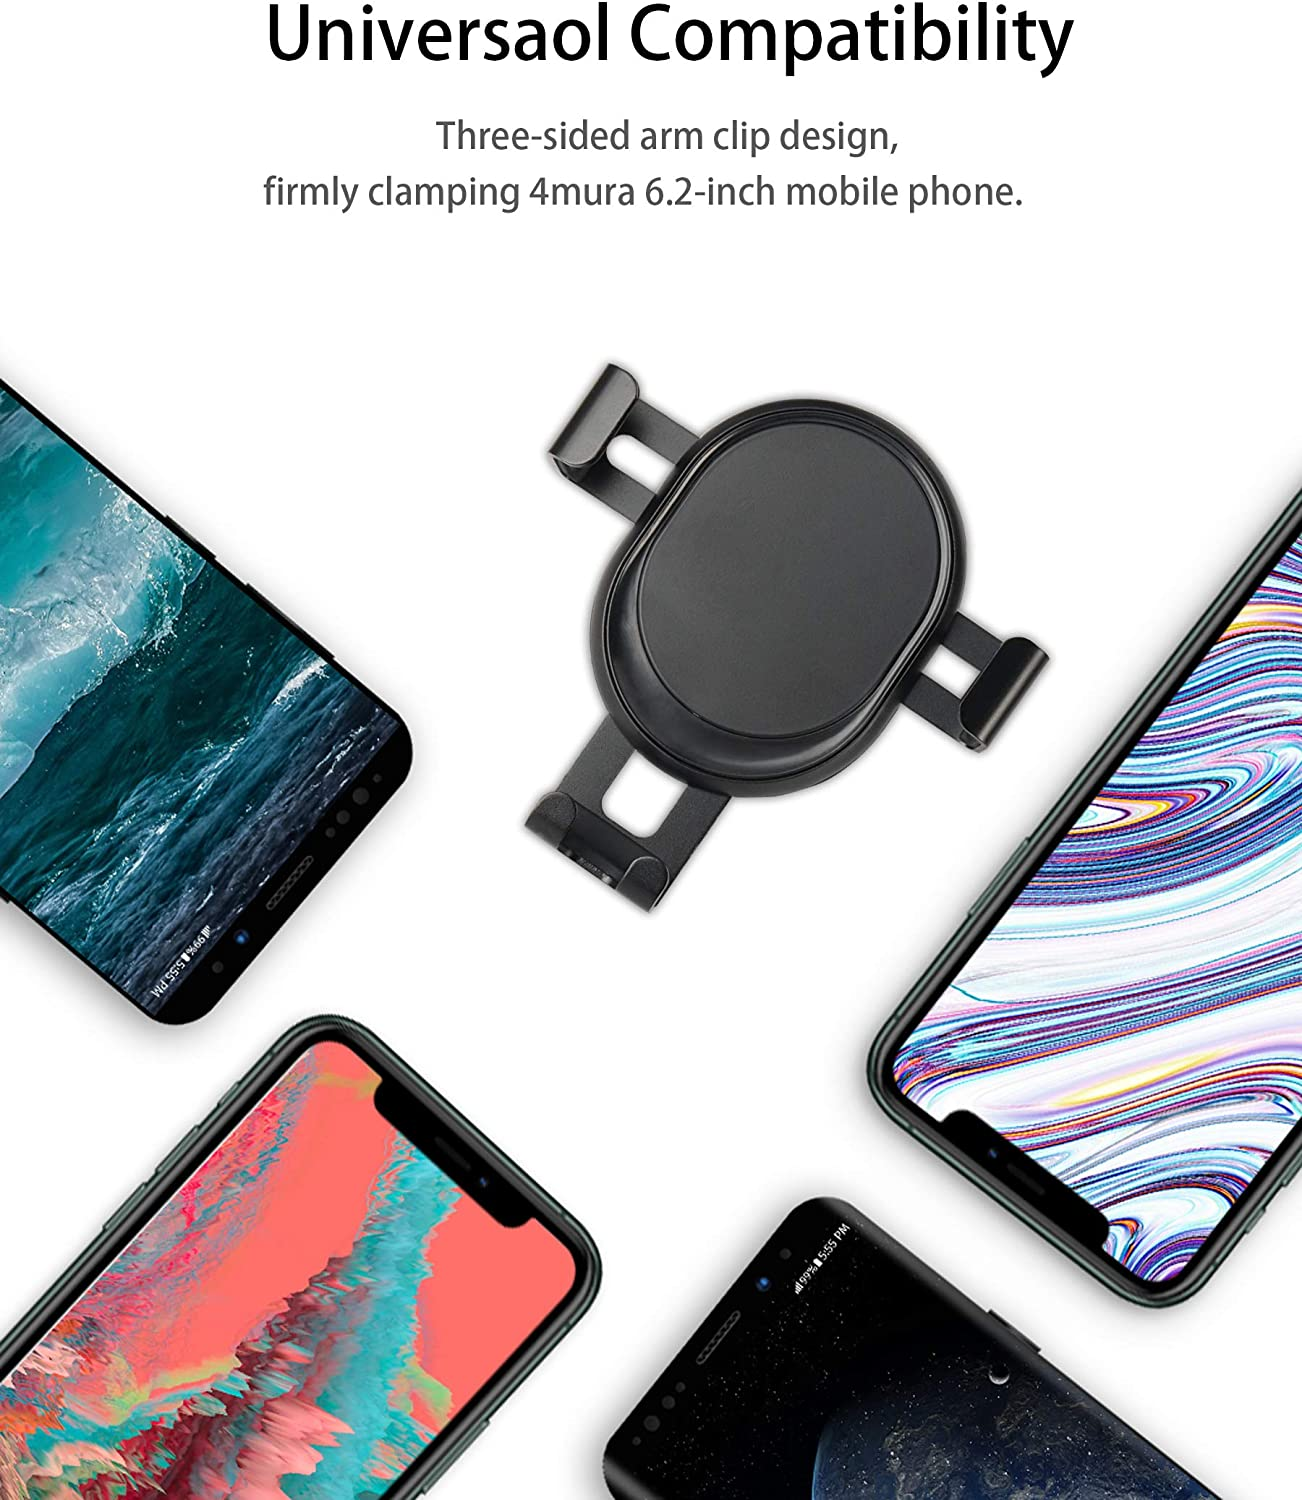 Black Google Pixel 2 XL LG G6 Smartphone Hevsd Car Air Vent Mount Cell Phone Holder Gravity Compatible for iPhone 11 Pro Max Xs Max XR X 6S 7 Plus 8 6 Samsung Galaxy S9 S7 Edge S8 S10 S6